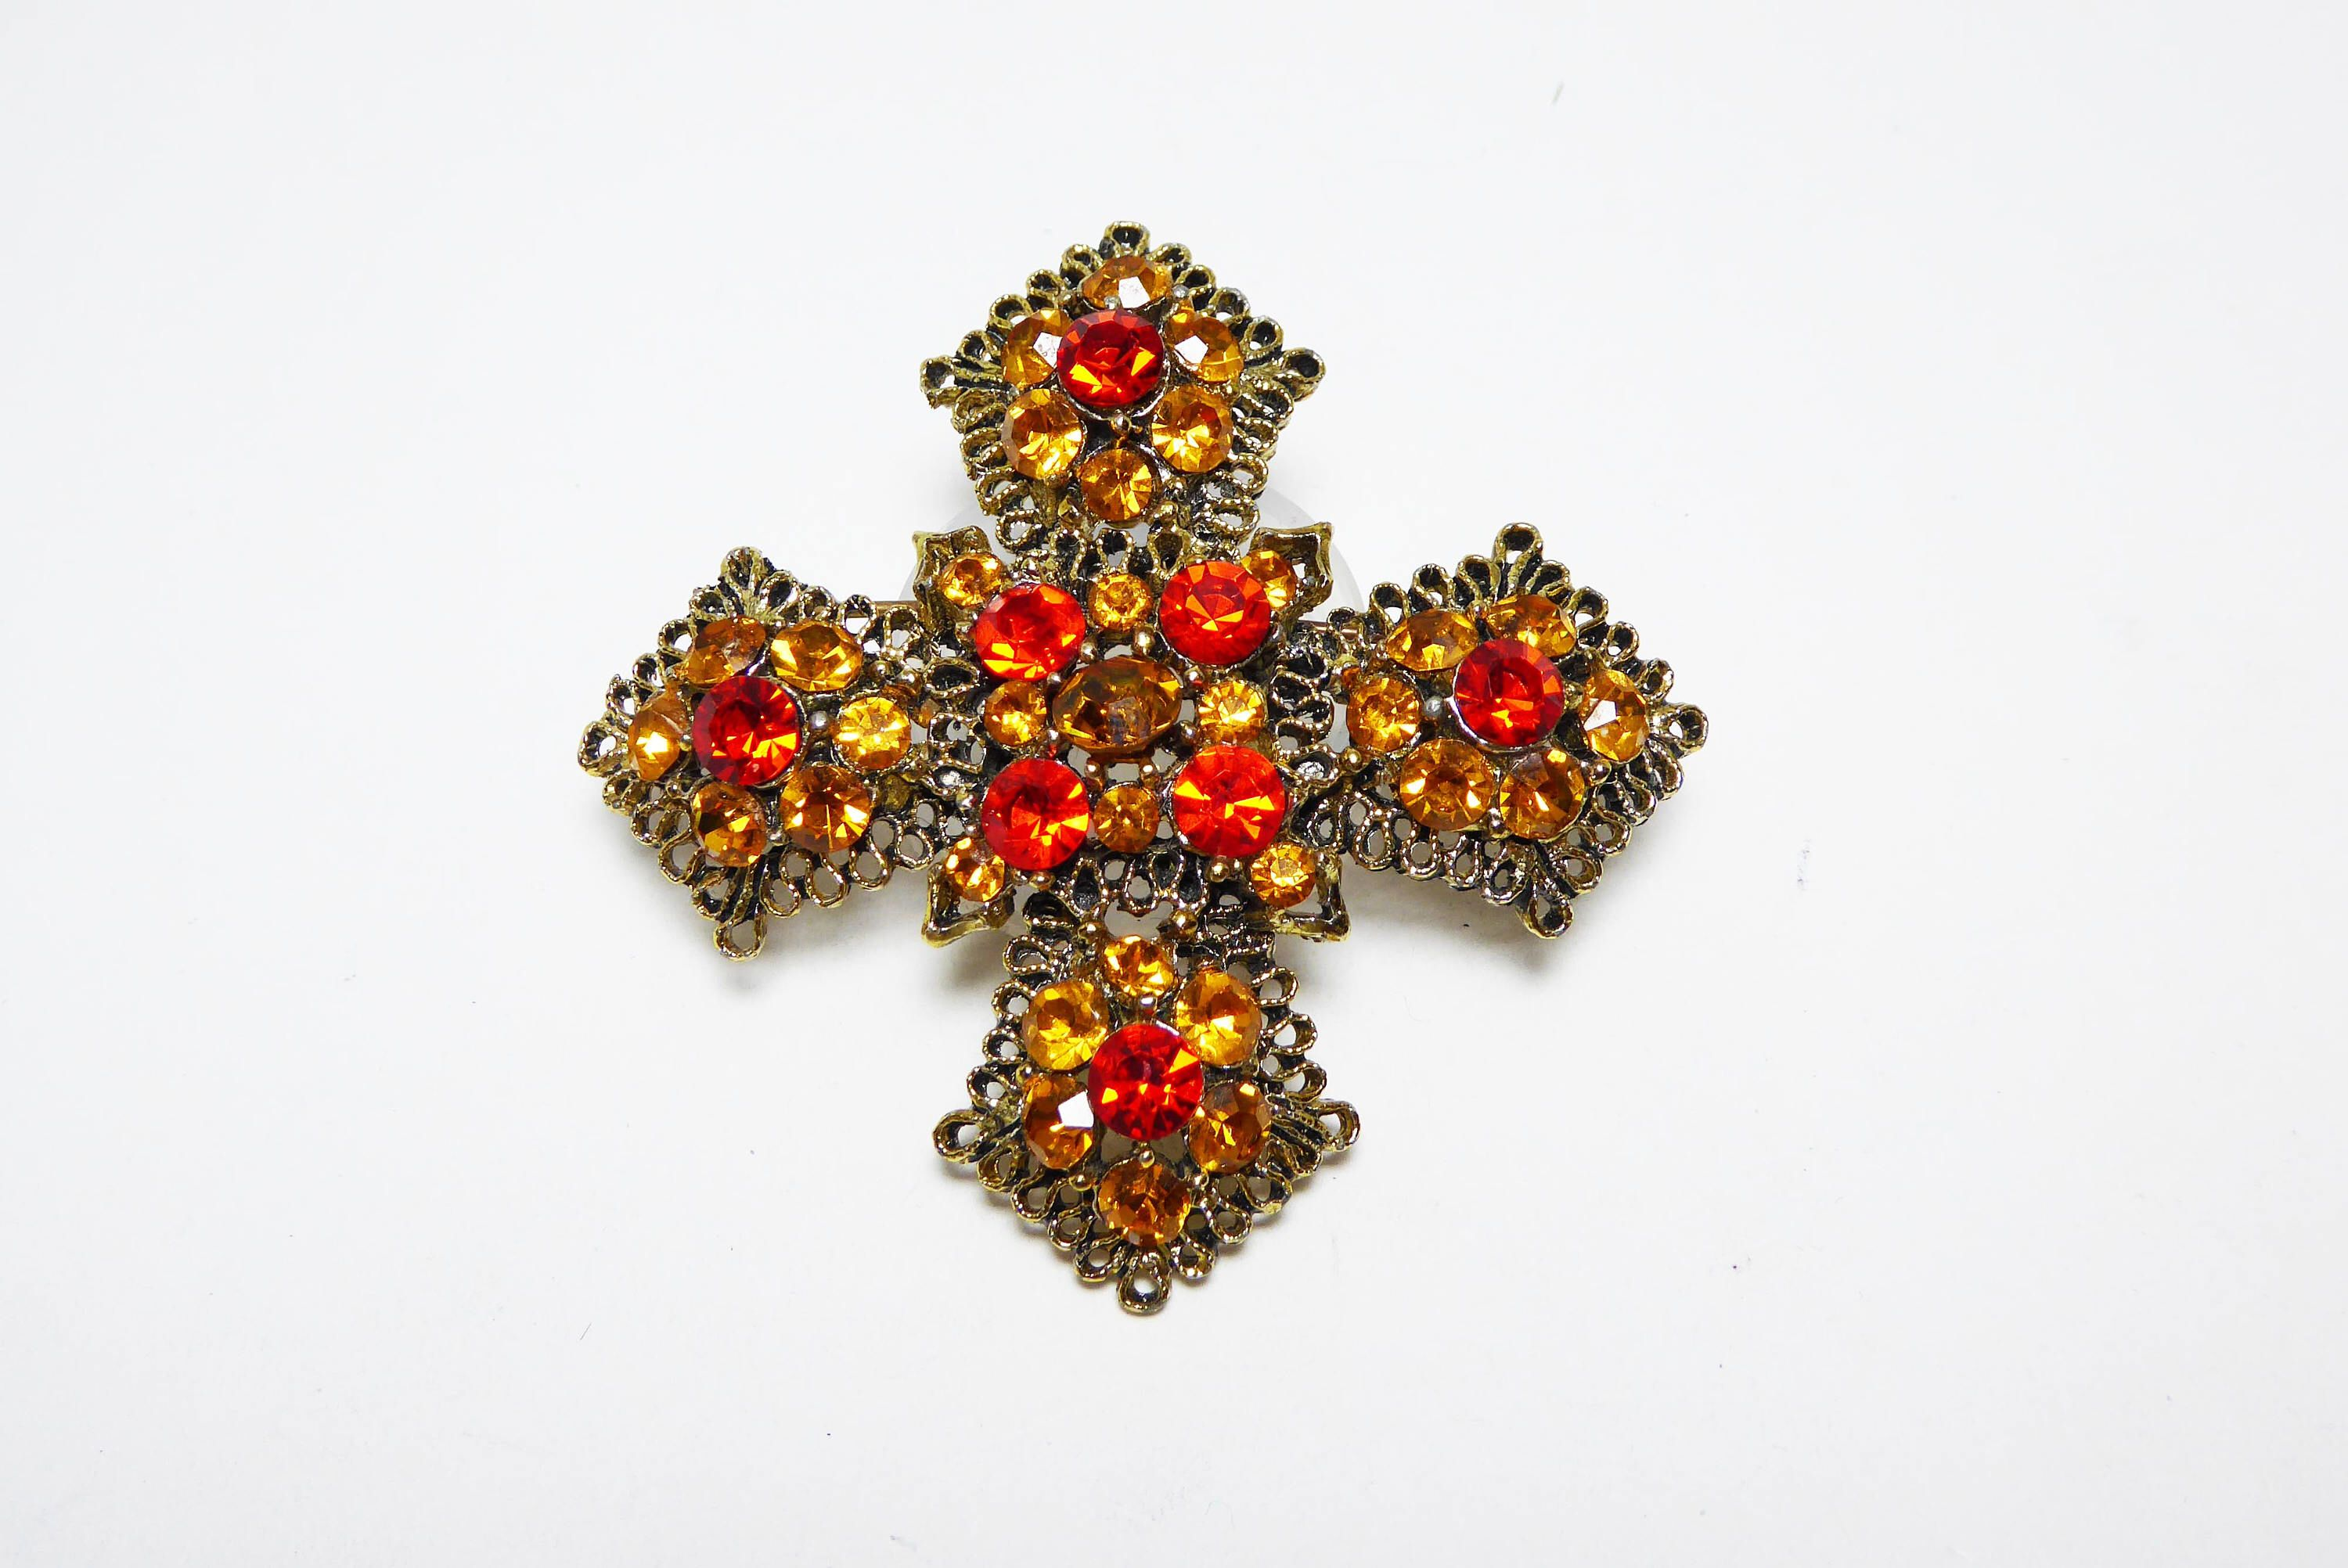 Excited to share the latest addition to my #etsy shop: Rhinestone Maltese Cross Brooch Pin, Pave Set Chaton Golden Yellow & Orange Rhinestones, Gold Tone Setting - Vintage 1960's 1970's Retro Era #jewelry #brooch #yellow #religious #orange #women